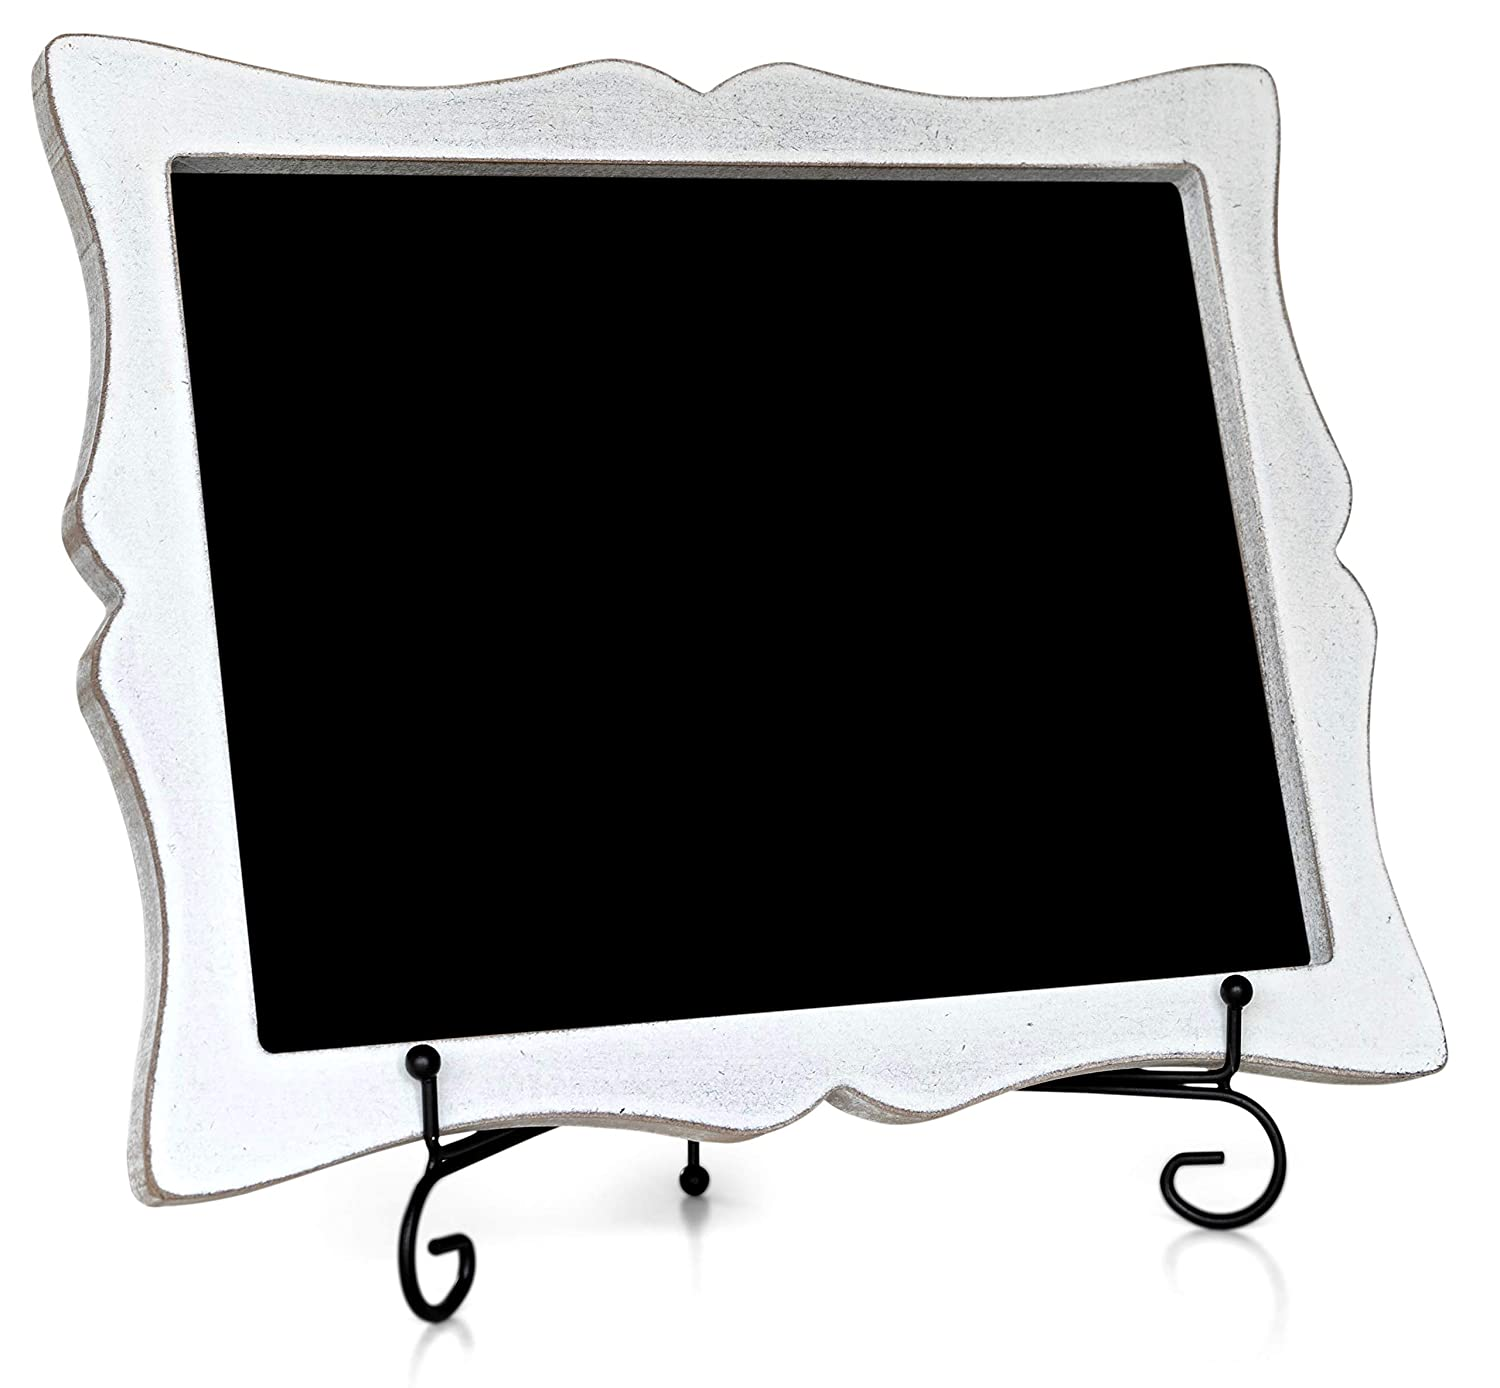 - Hand Crafted Tabletop Chalkboard with Rustic Sweetheart Frame Rustic White Hanging or Standing Small Chalkboard Oak letters Chalkboard Sign with Easel